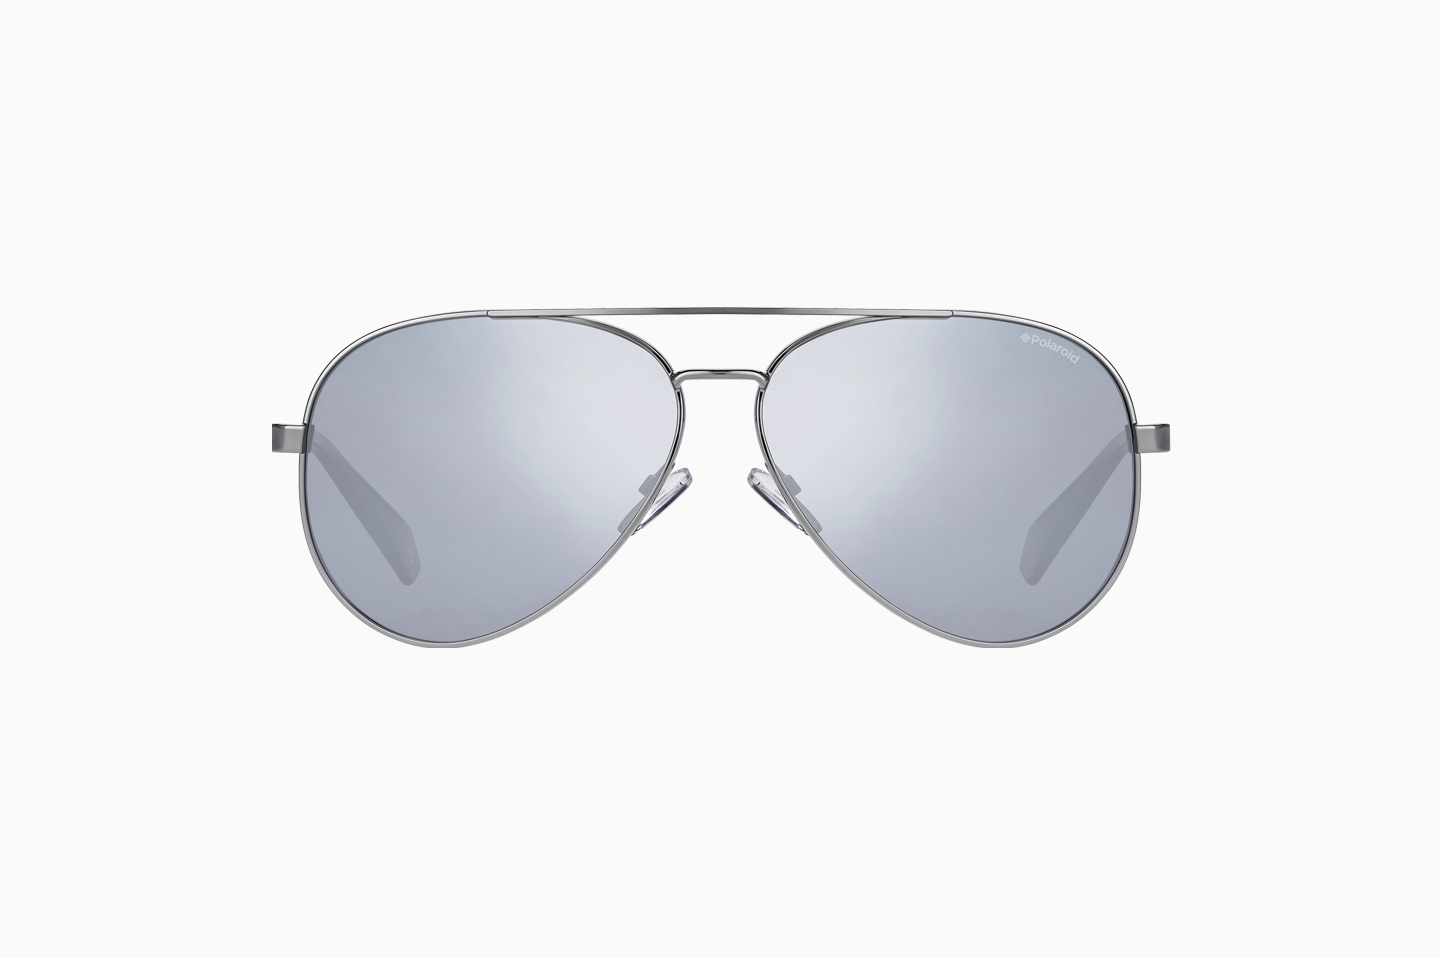 Polaroid Mirrored Aviator